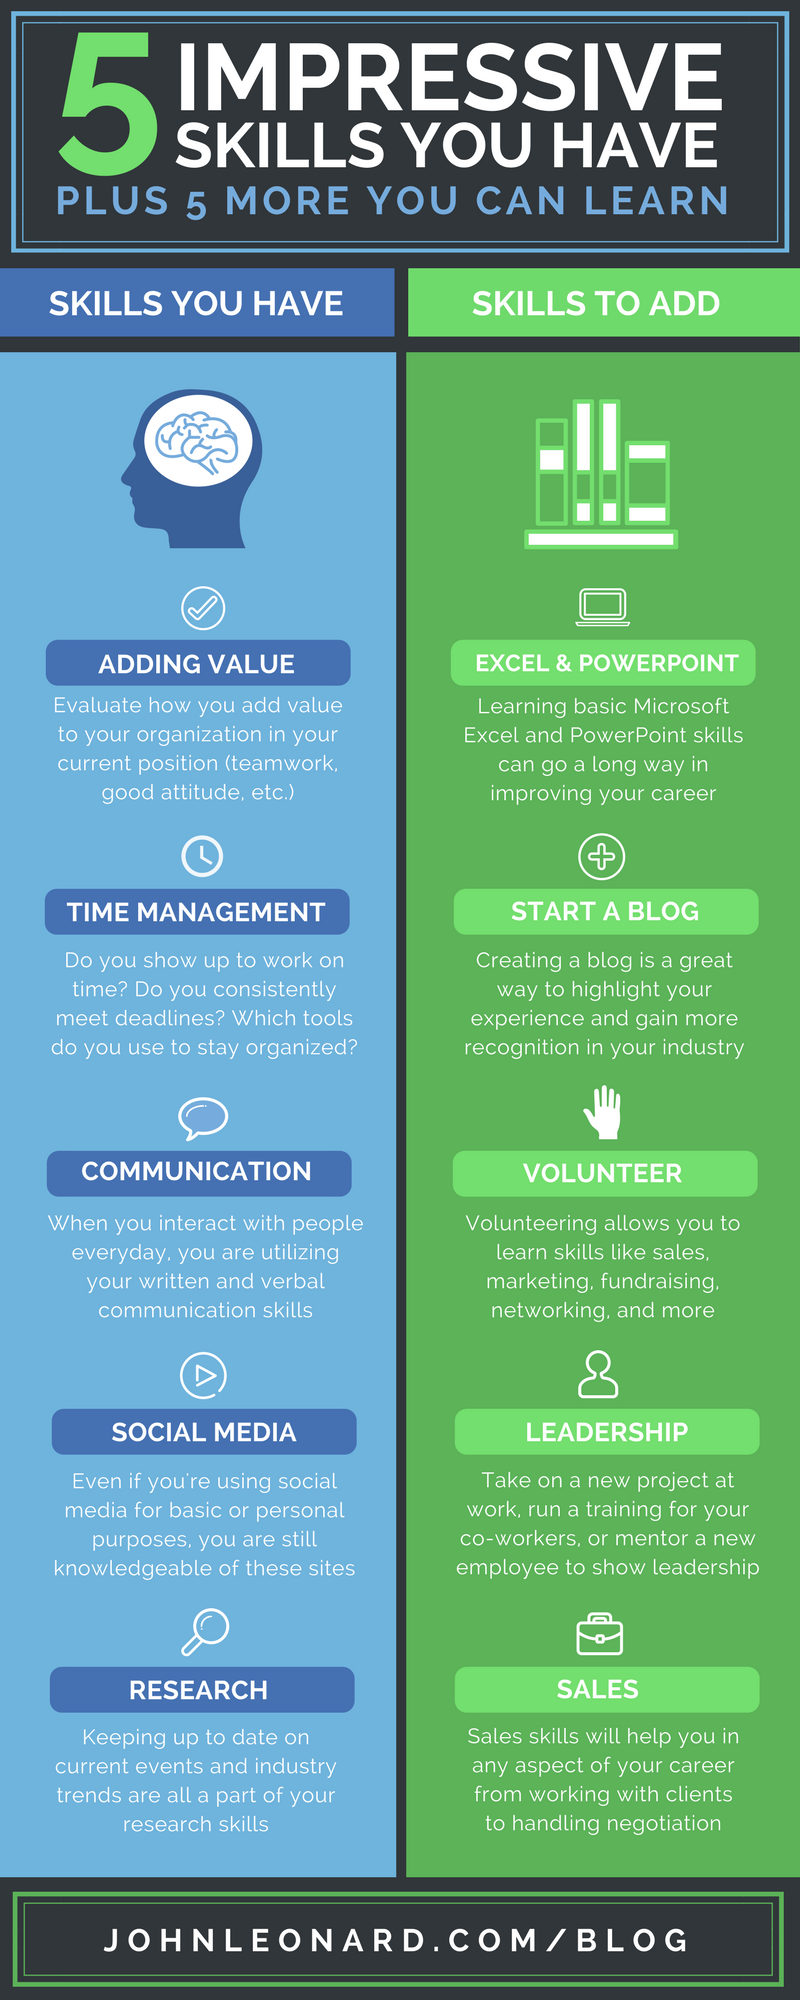 5 Impressive Skills You Have, Plus 5 More to Learn Infographic-1.png